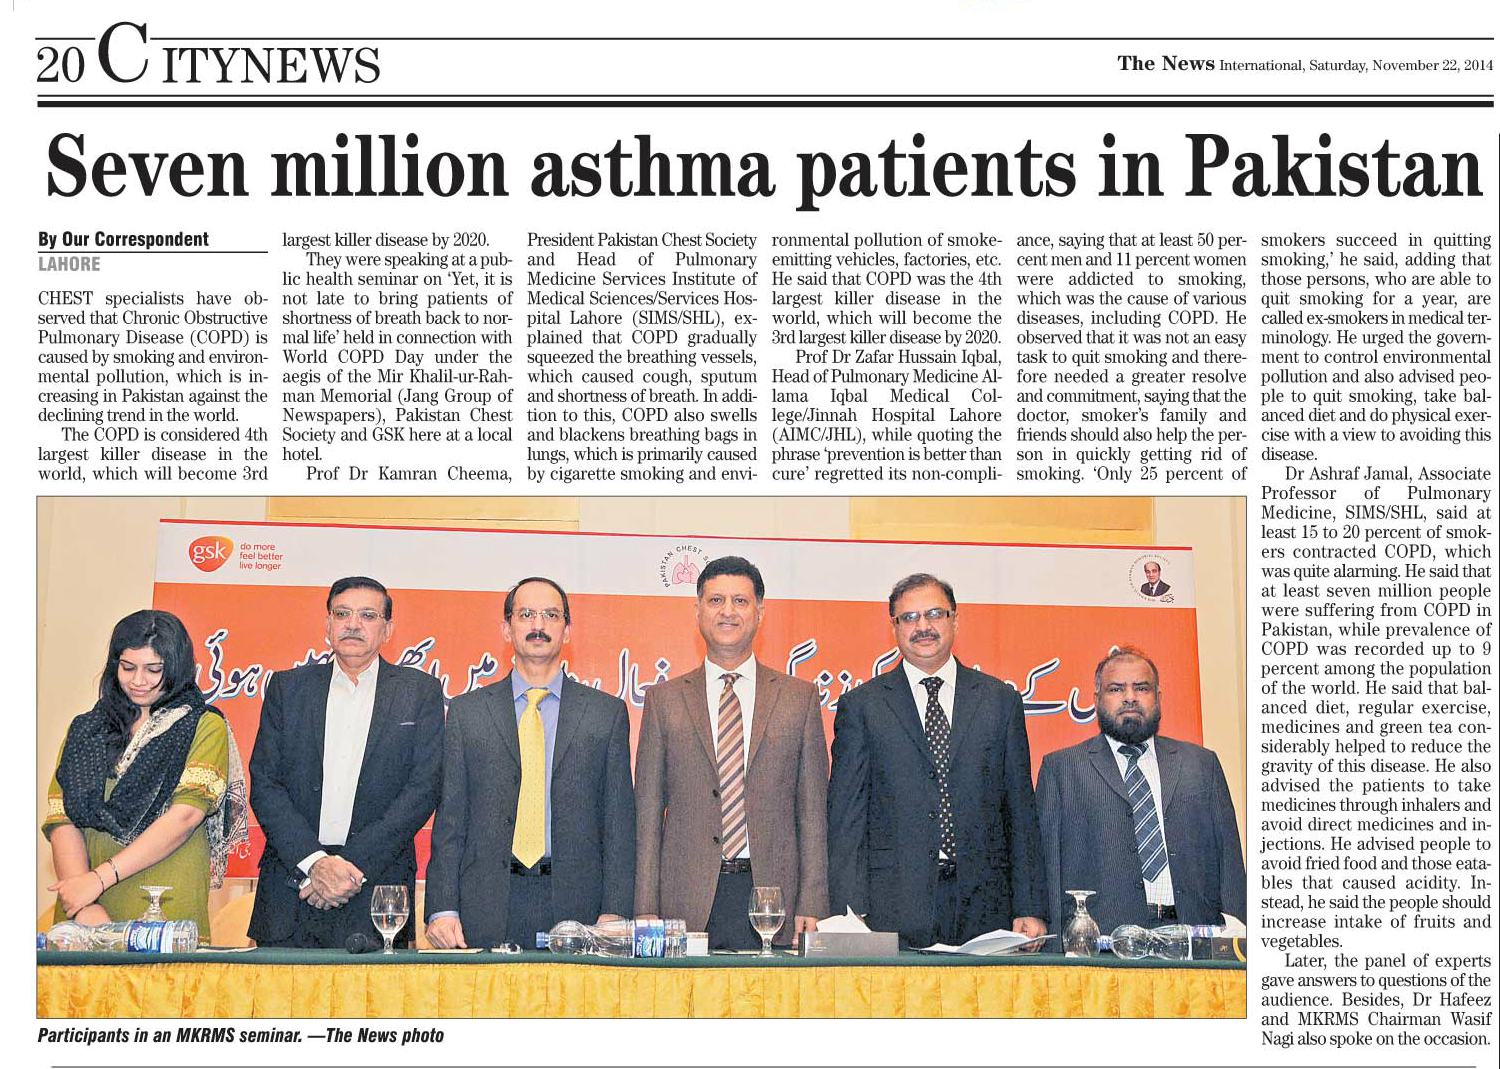 Seven million asthama patients in Pakistan